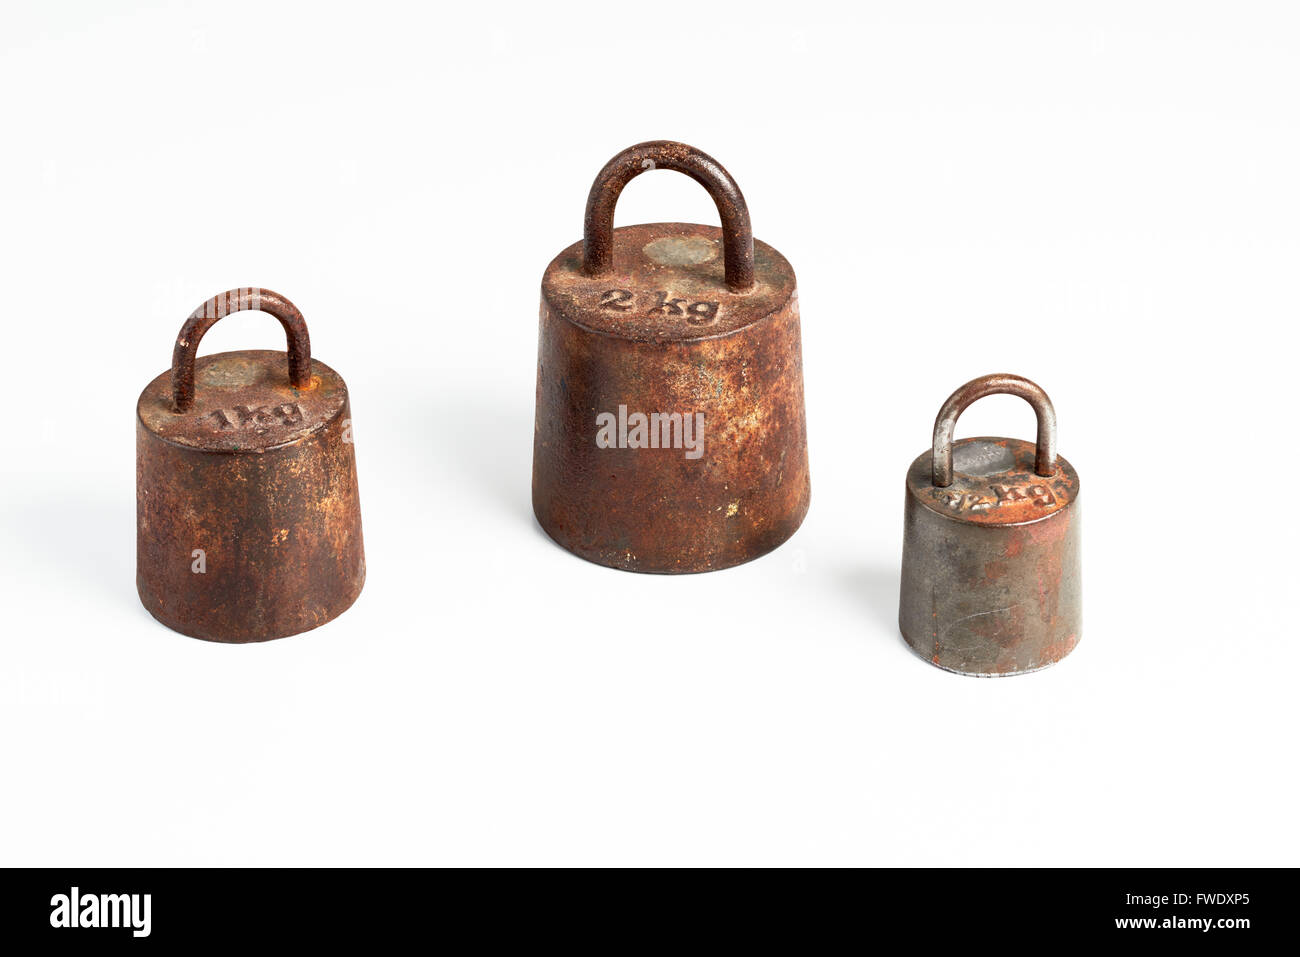 Old iron metric weights - Stock Image